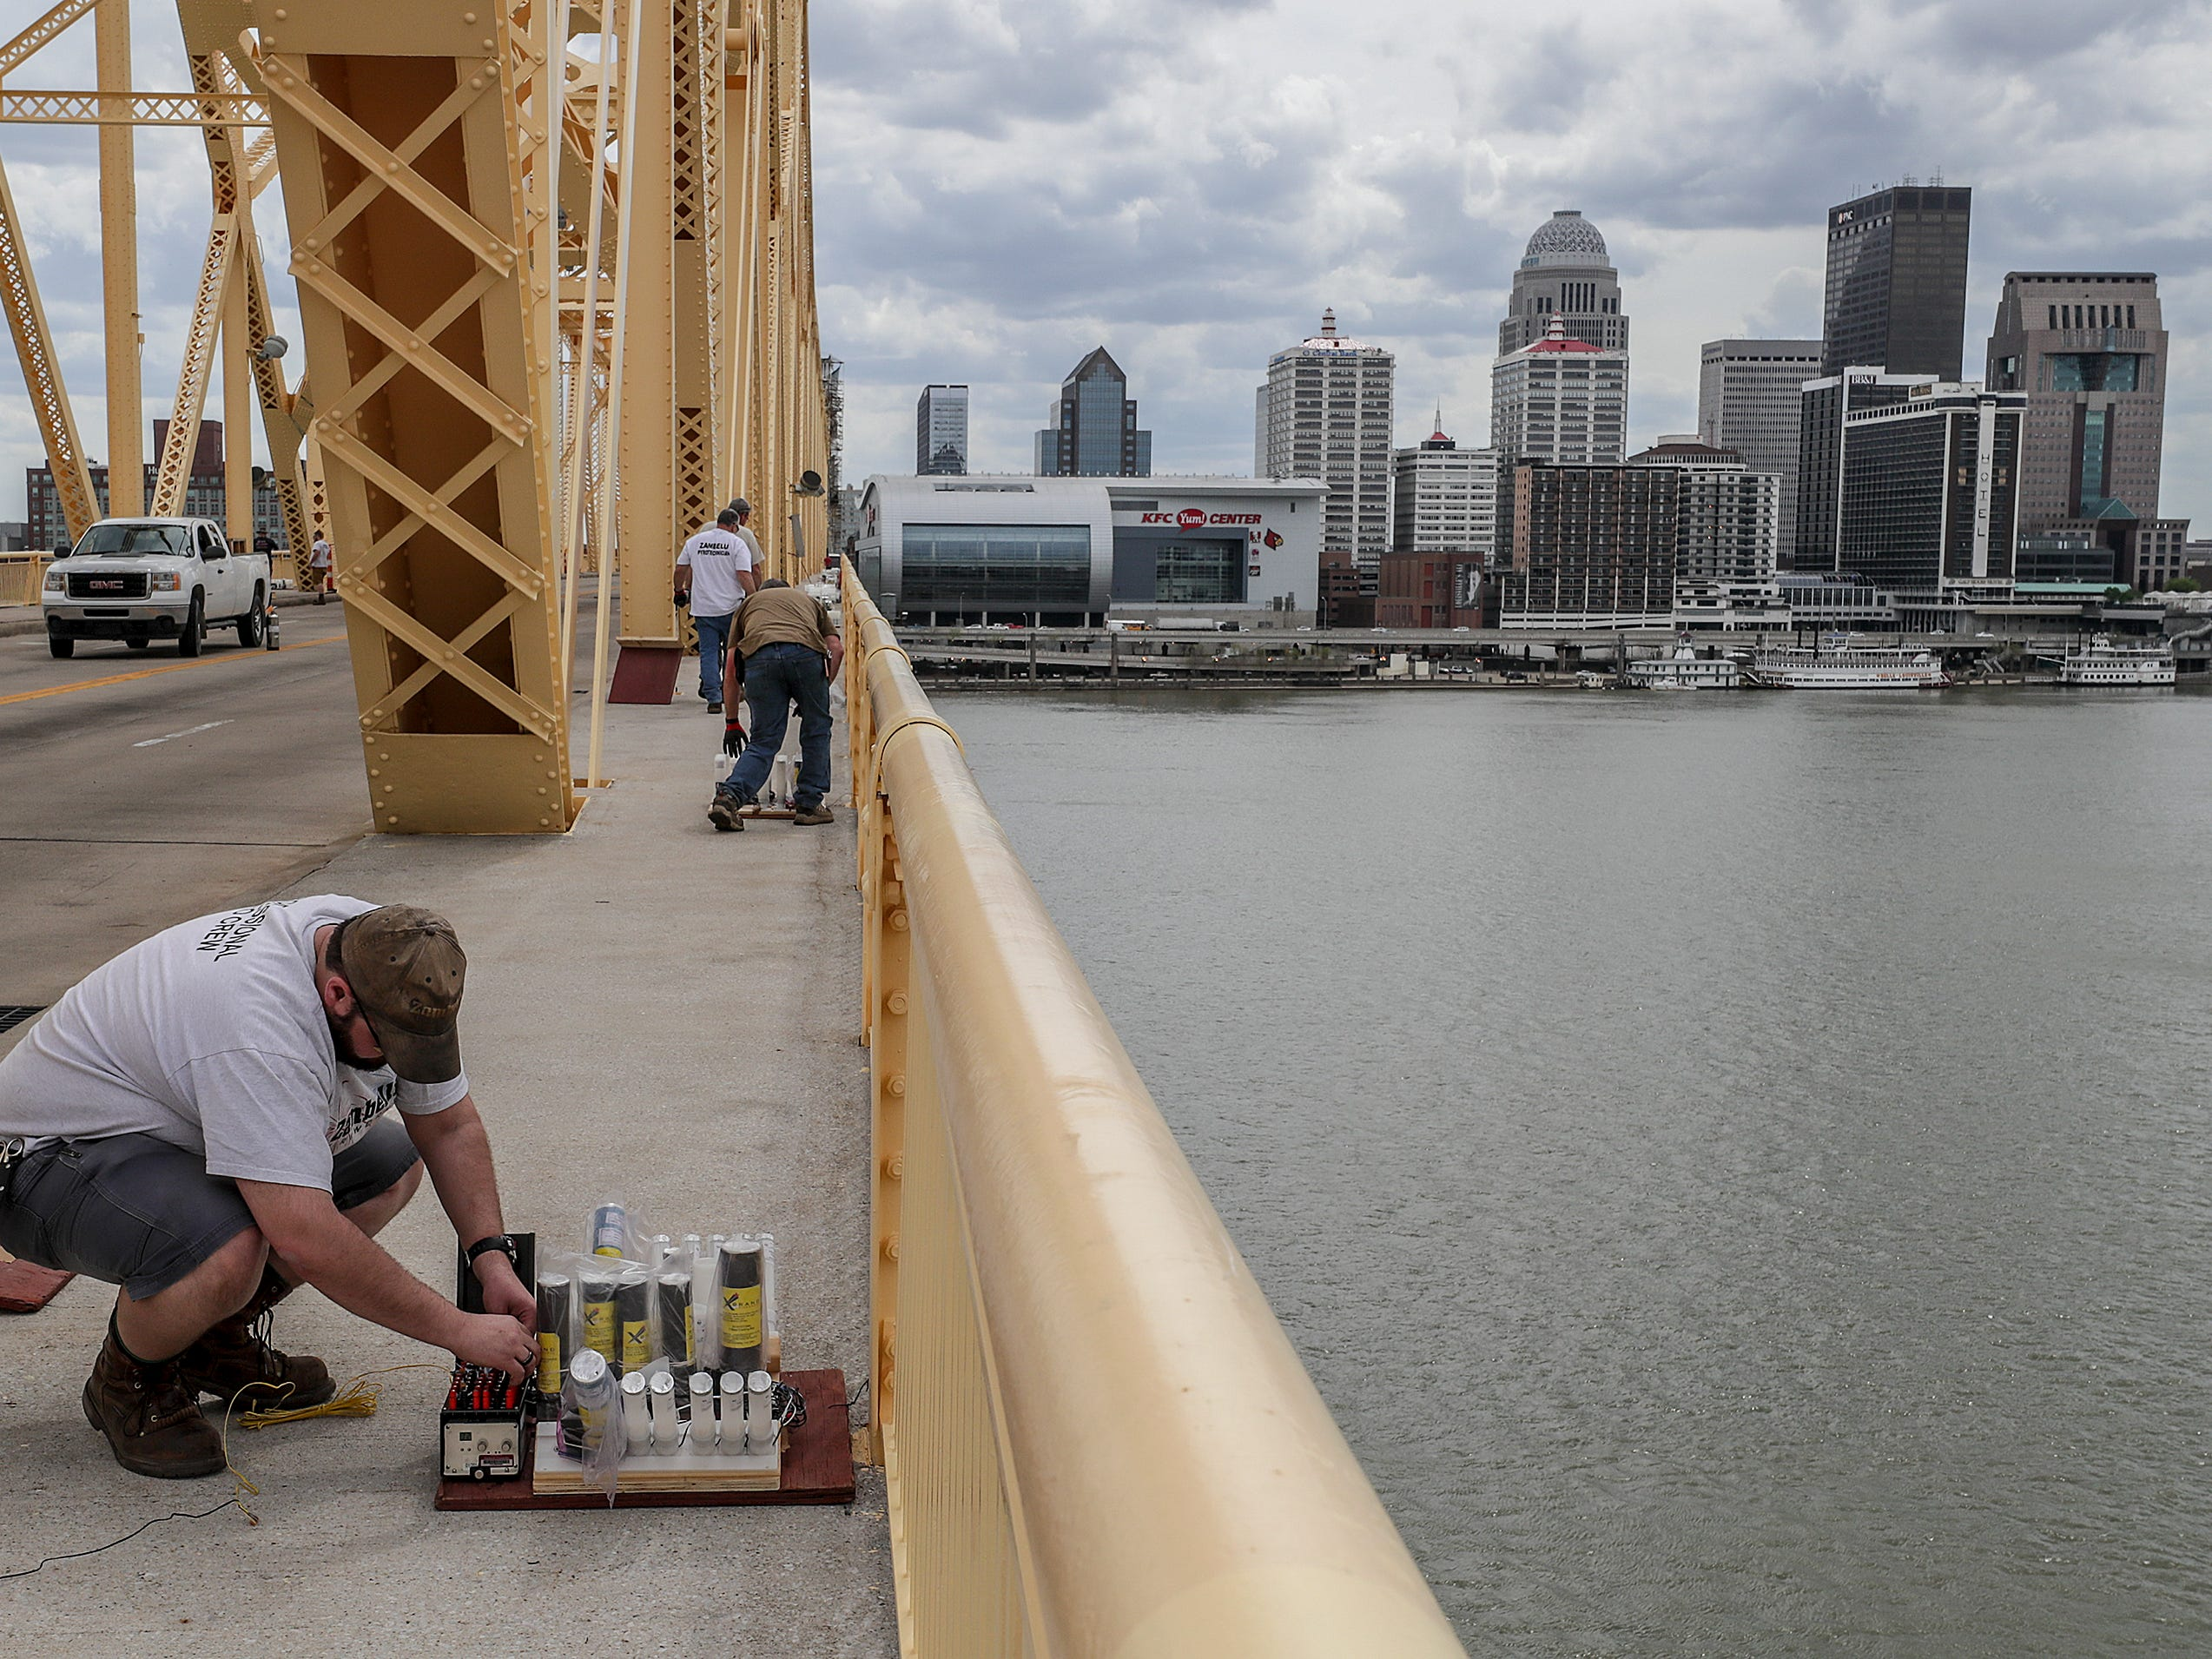 Ben Back, with Zambelli, helps secure the fireworks to the Clark Memorial Bridge on Thursday afternoon as crews took over the bridge in advance of Thunder Over Louisville.